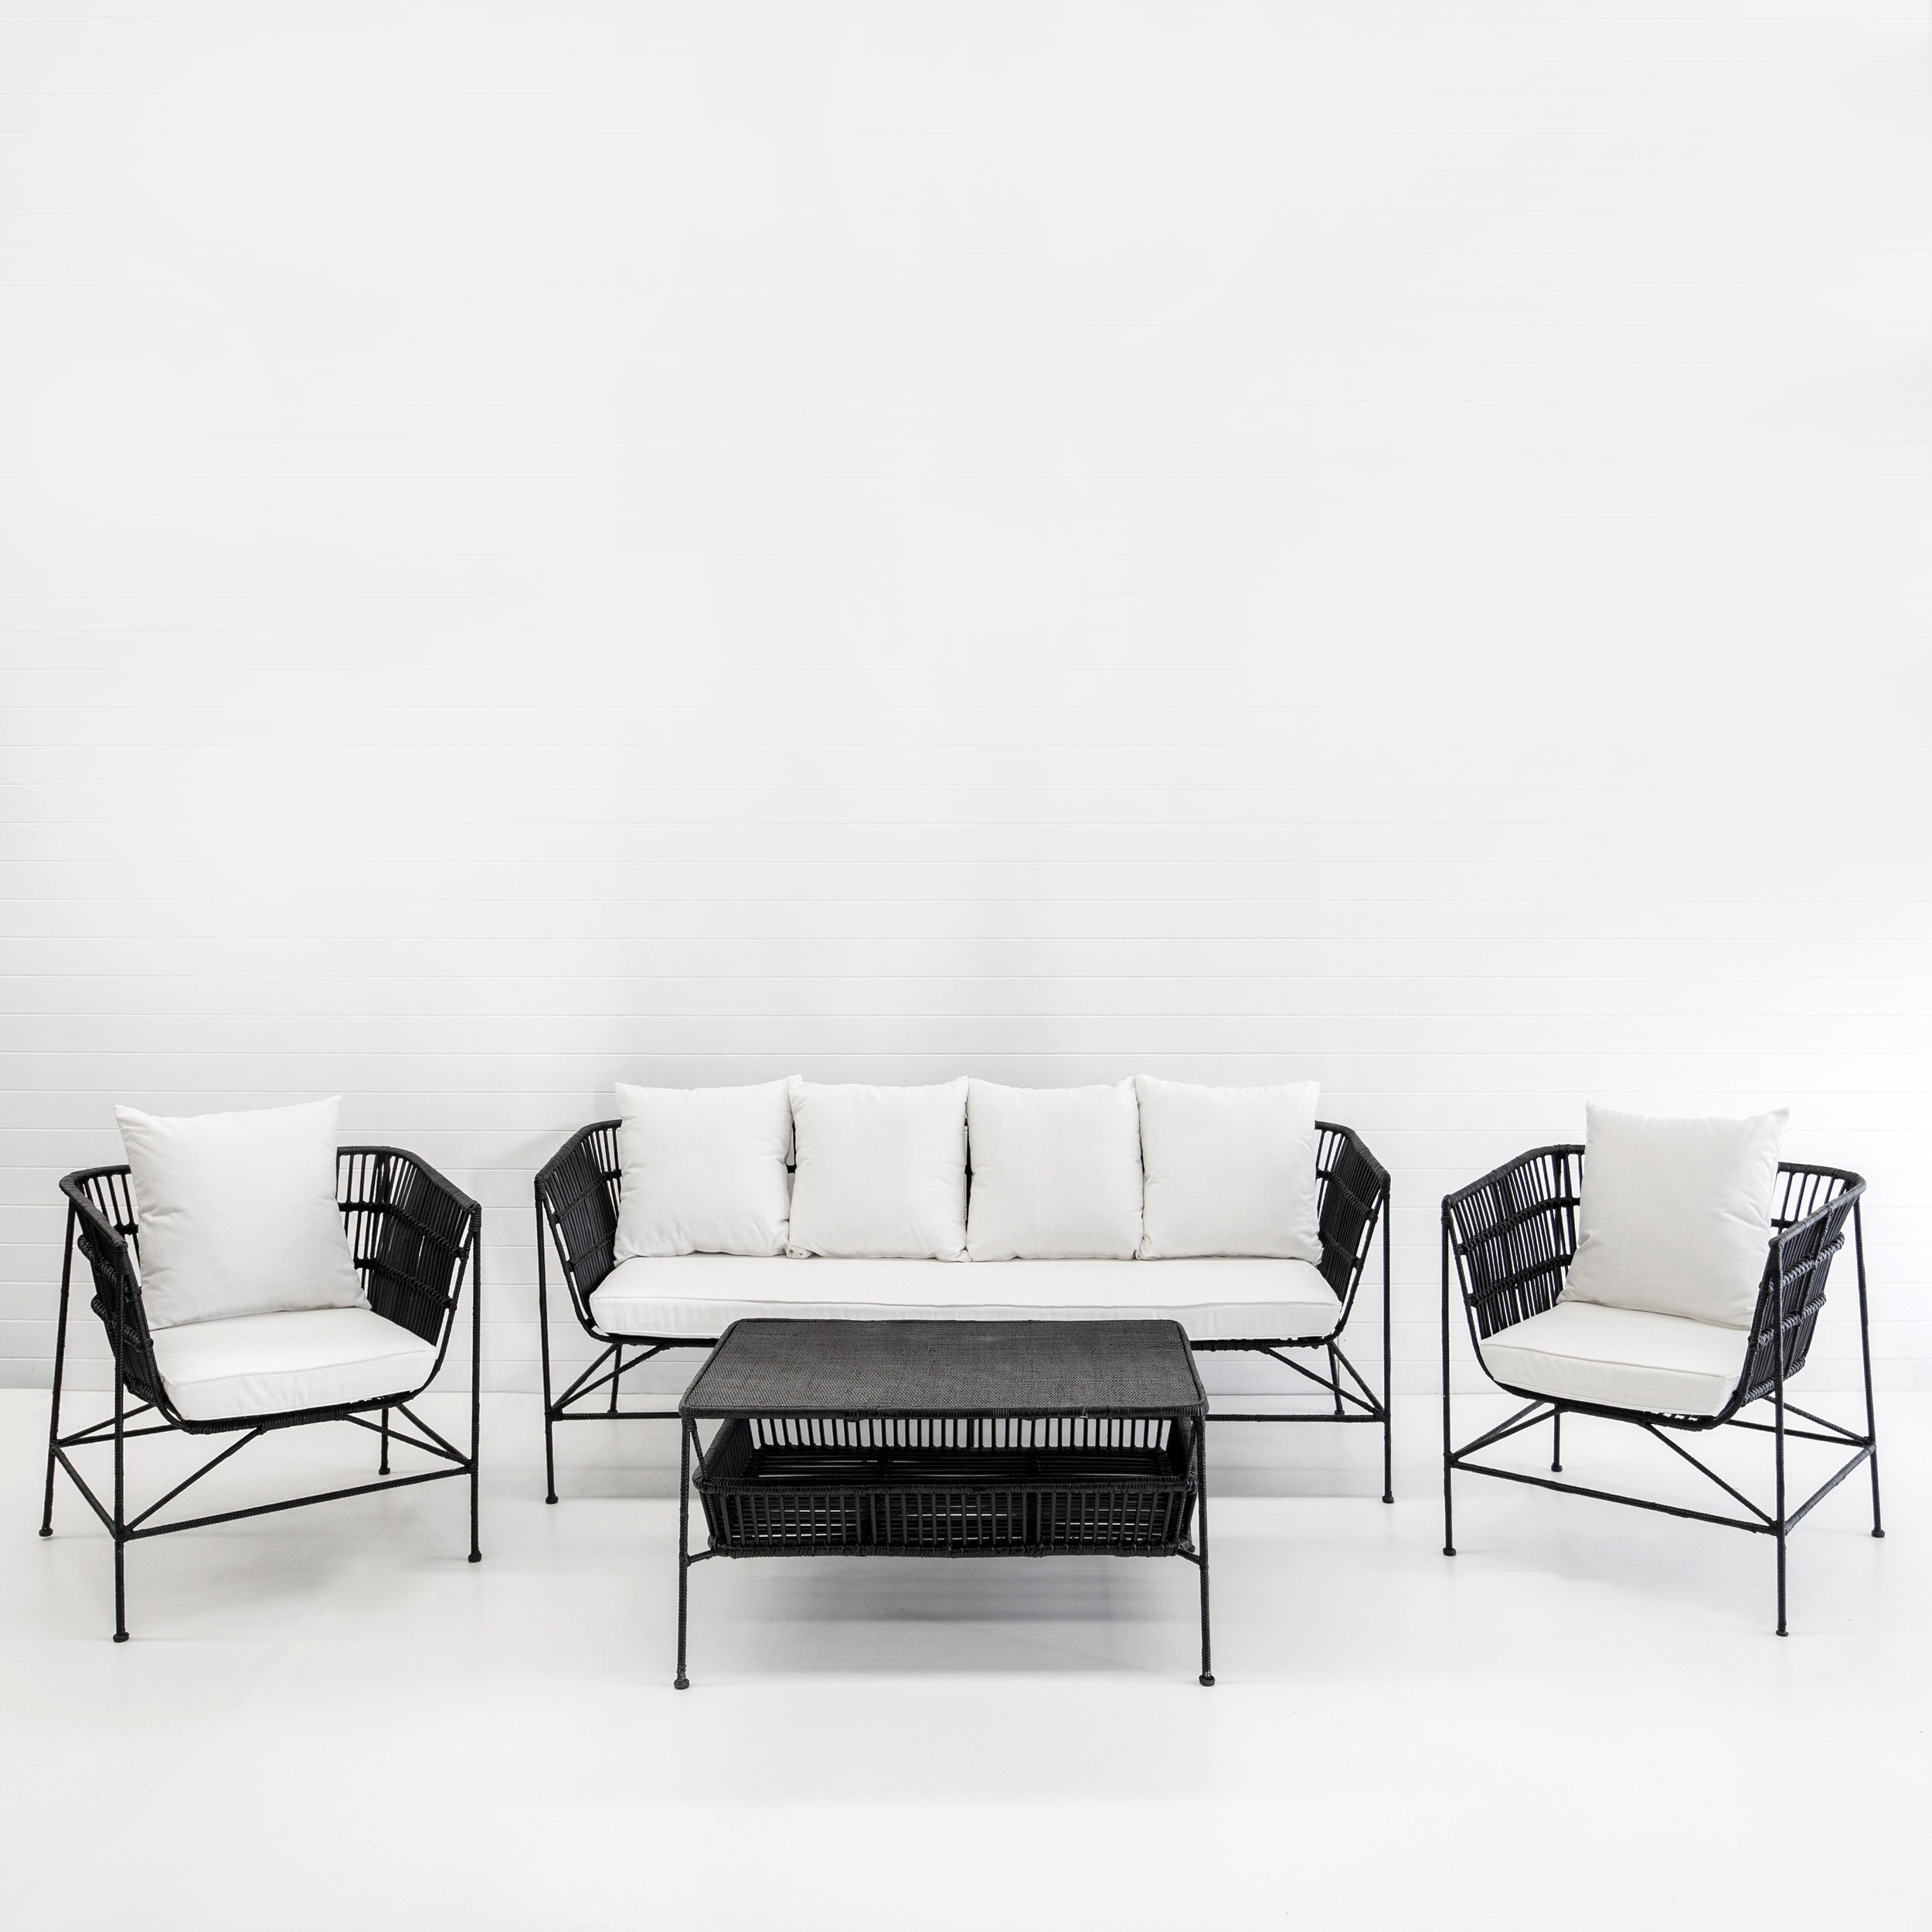 INDIE BLACK SOFA PACKAGE WITH WHITE CUSHIONS